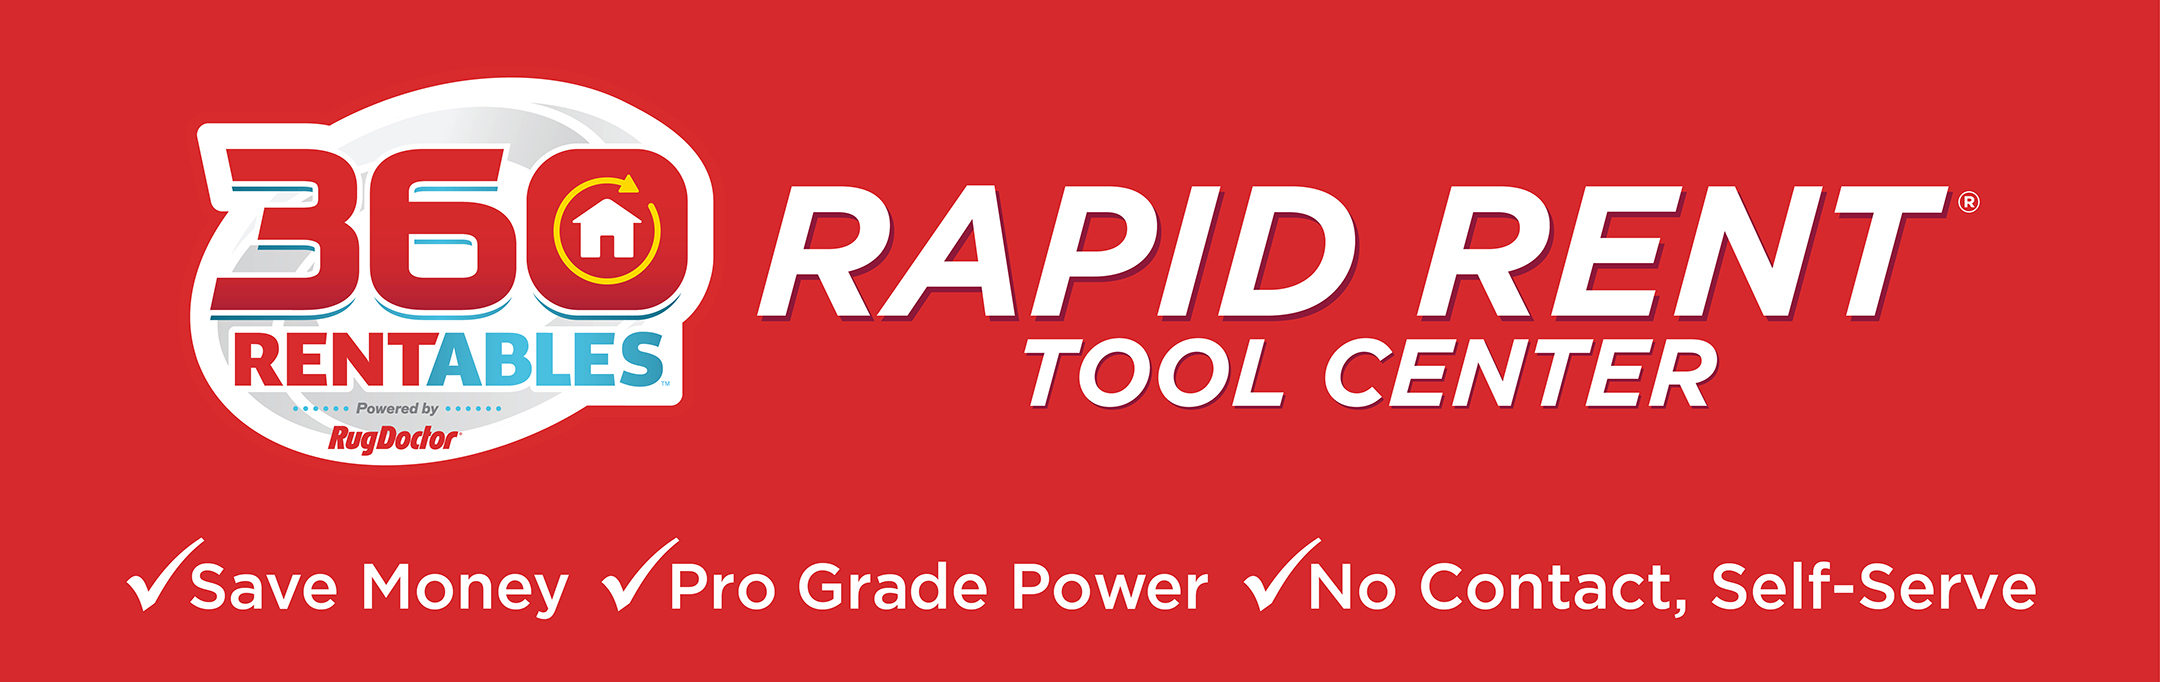 tool center header - RapidRent Tool Center